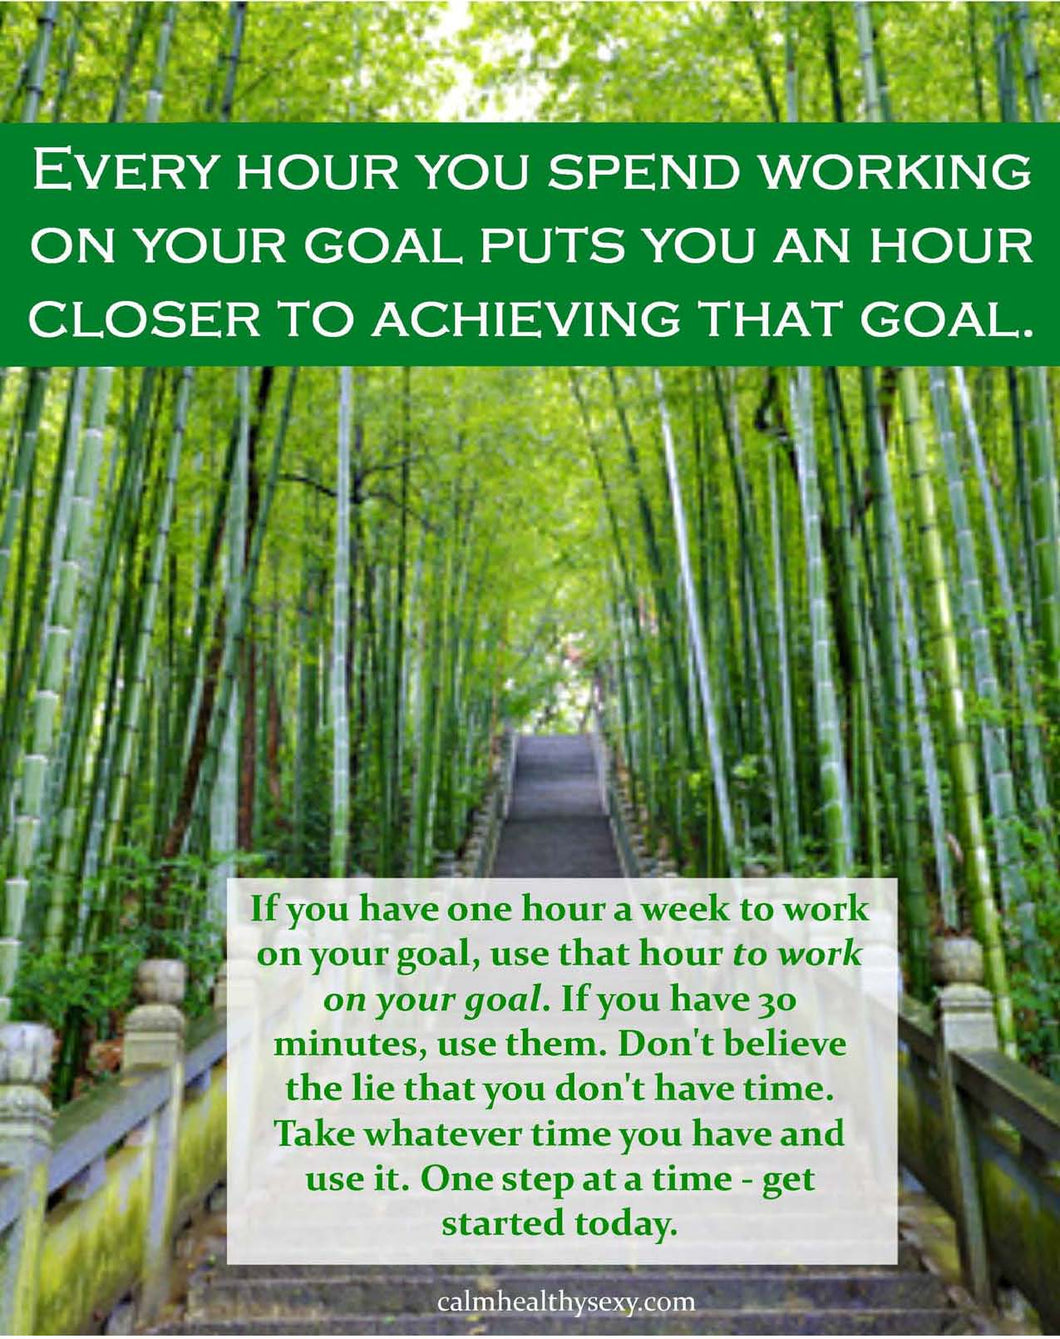 One Hour Closer to Achieving Your Goal